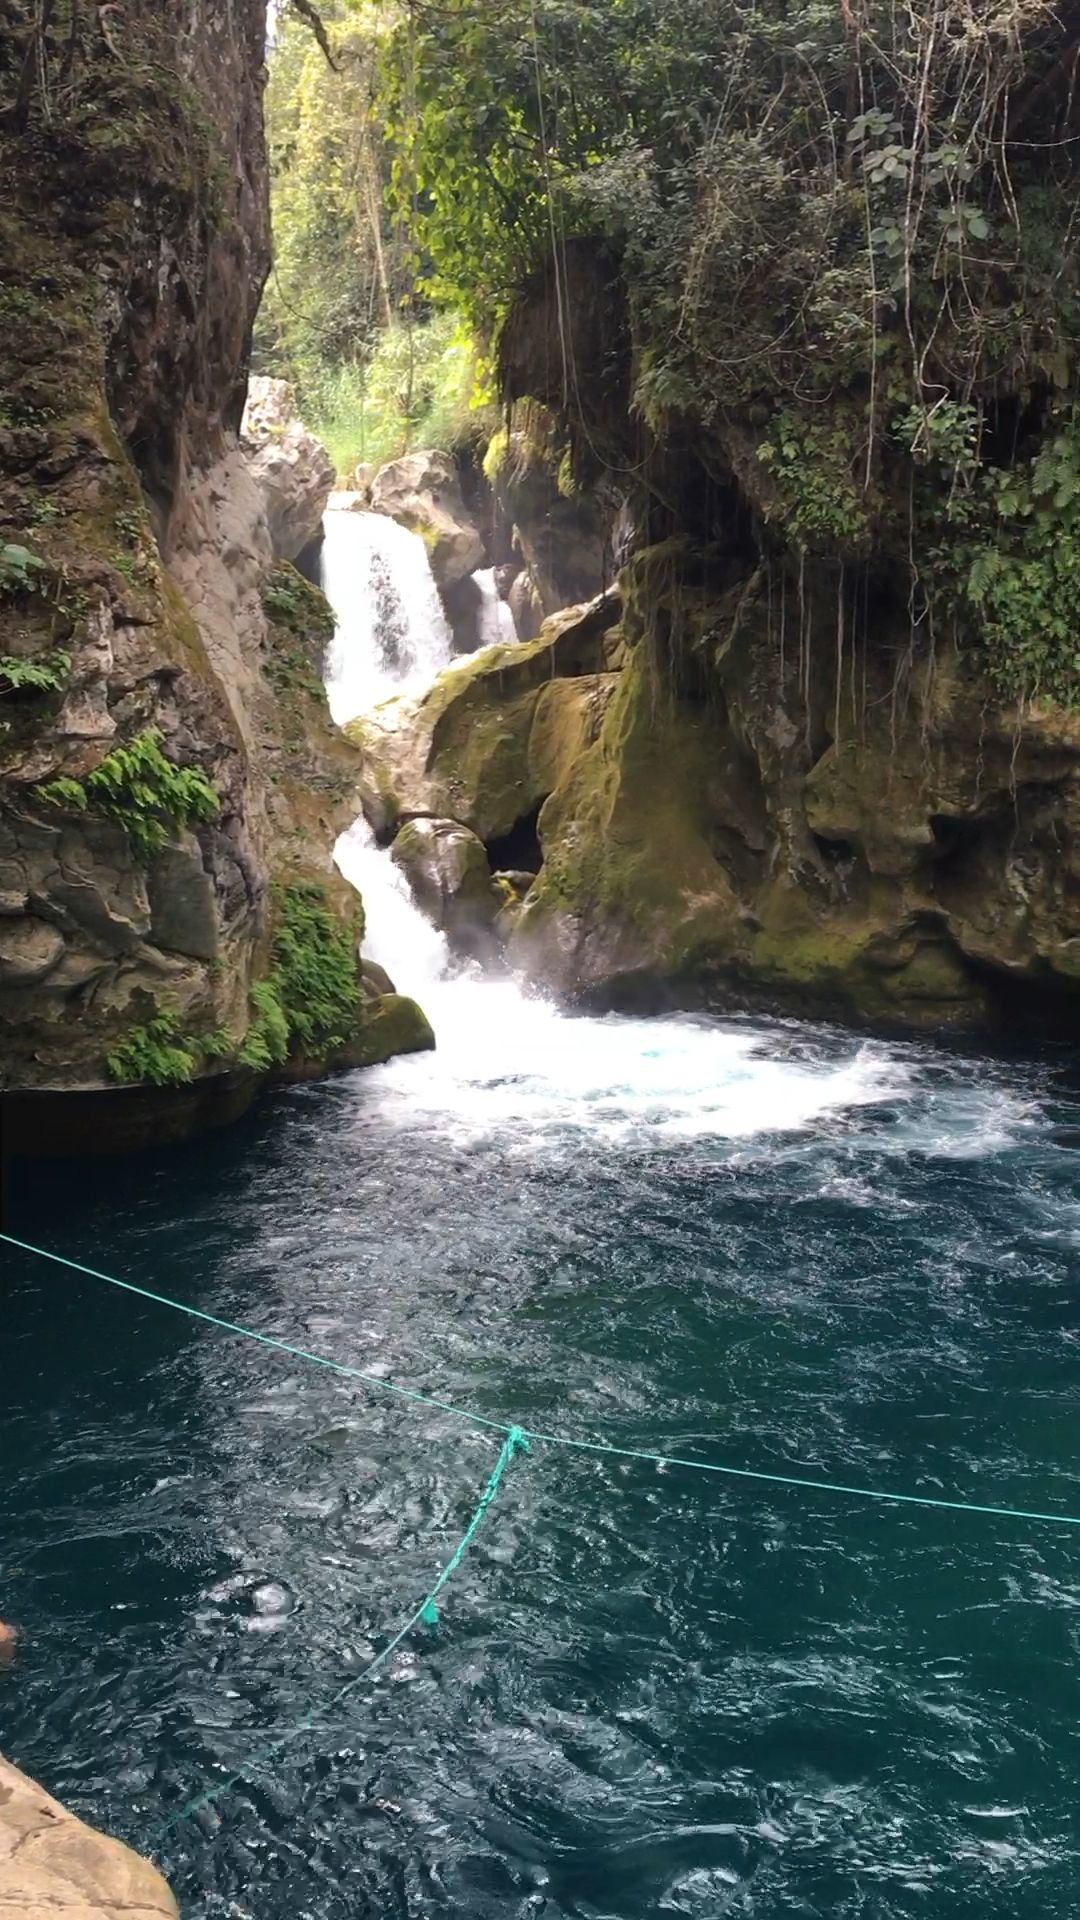 Puente De Dios swimming cenote and waterfall in La Huasteca Potosina, Mexico. Visit our travel guide to learn more about visiting this beautiful place!